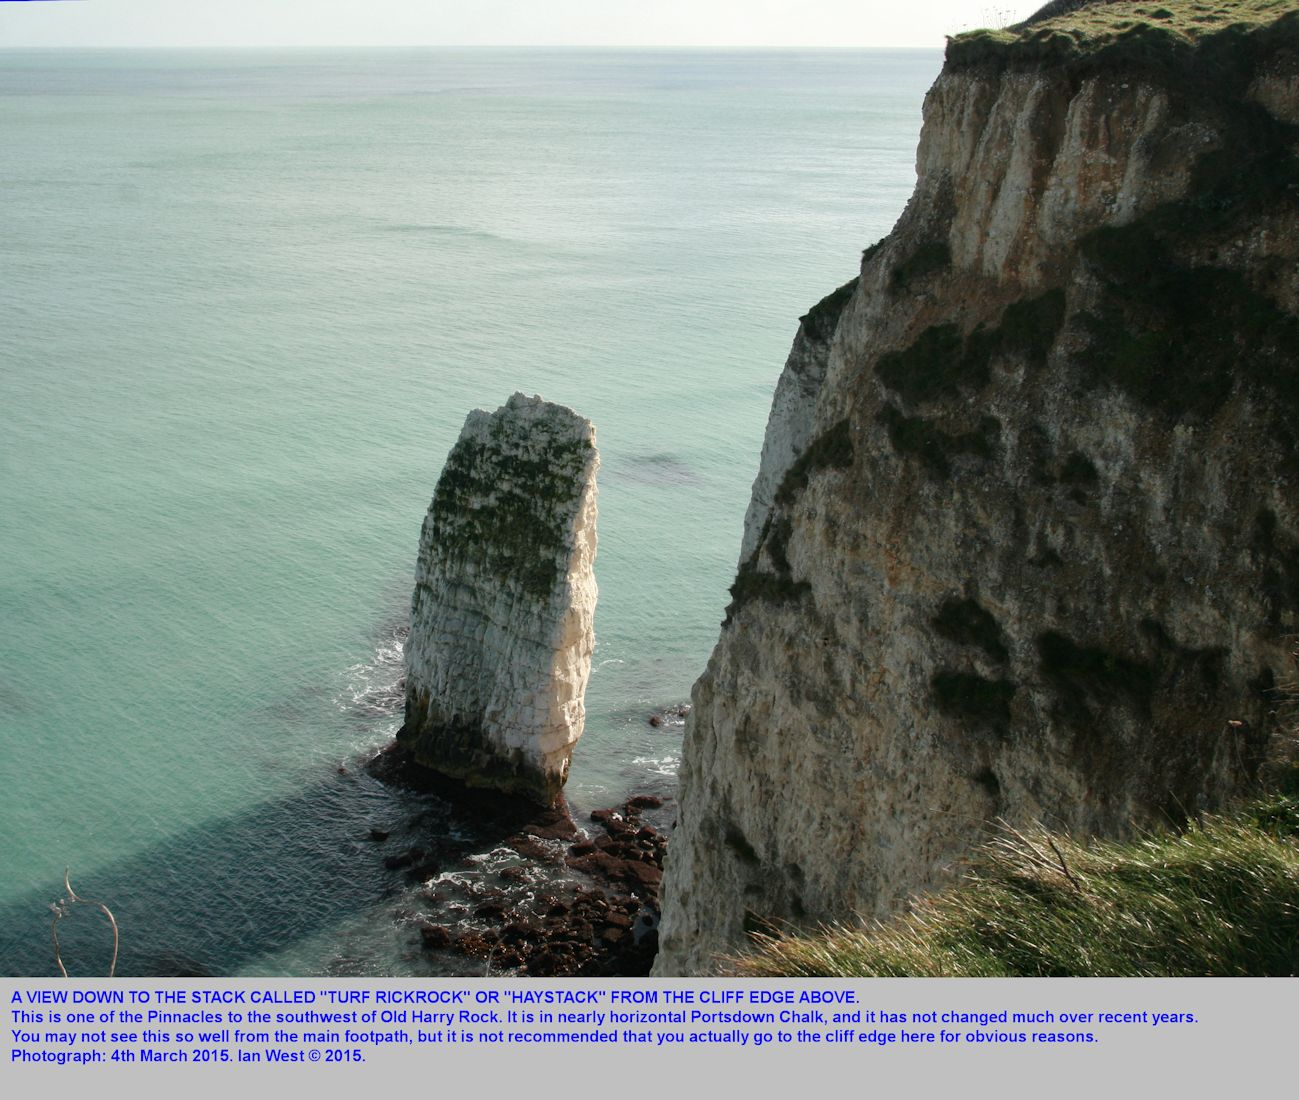 The sea stack, Turf Rickrock or Haystack,  of Portsdown Chalk Formation, one of the Pinnacles, southwest of Old Harry Rocks, Studland, Dorset, 4th March 2015, by Ian West